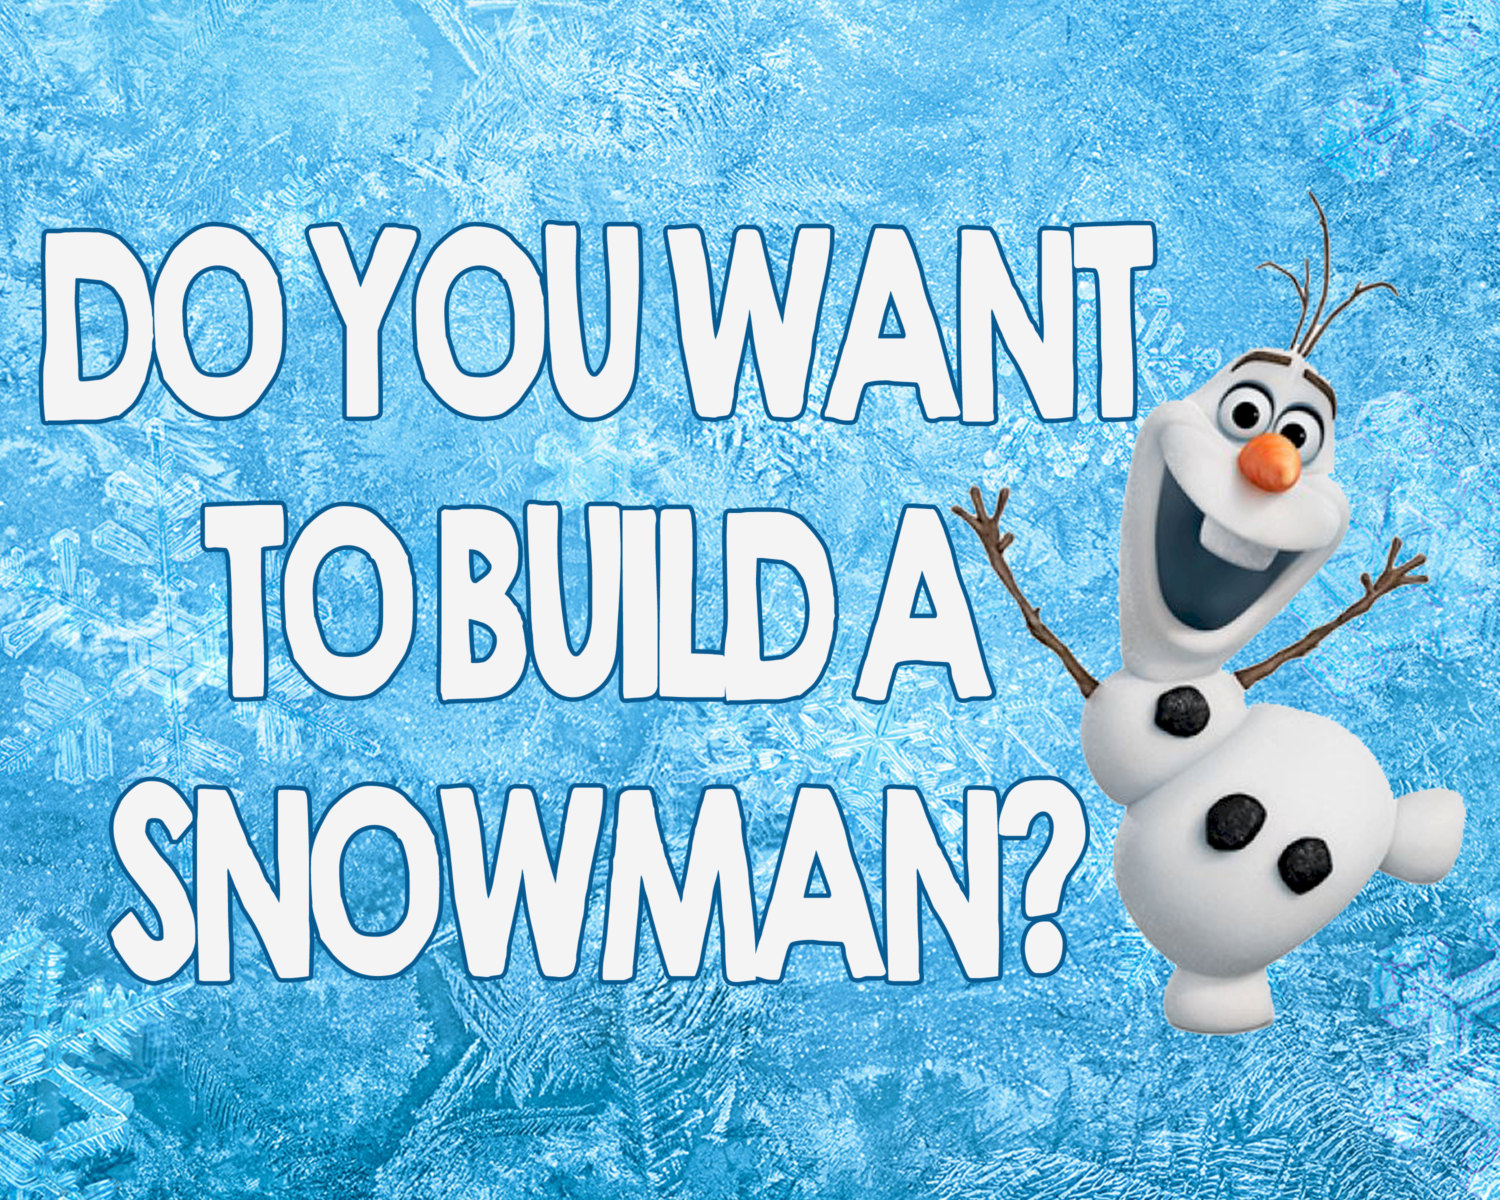 ... Snowman Olaf 8 best images of do you wanna build a snowman printable